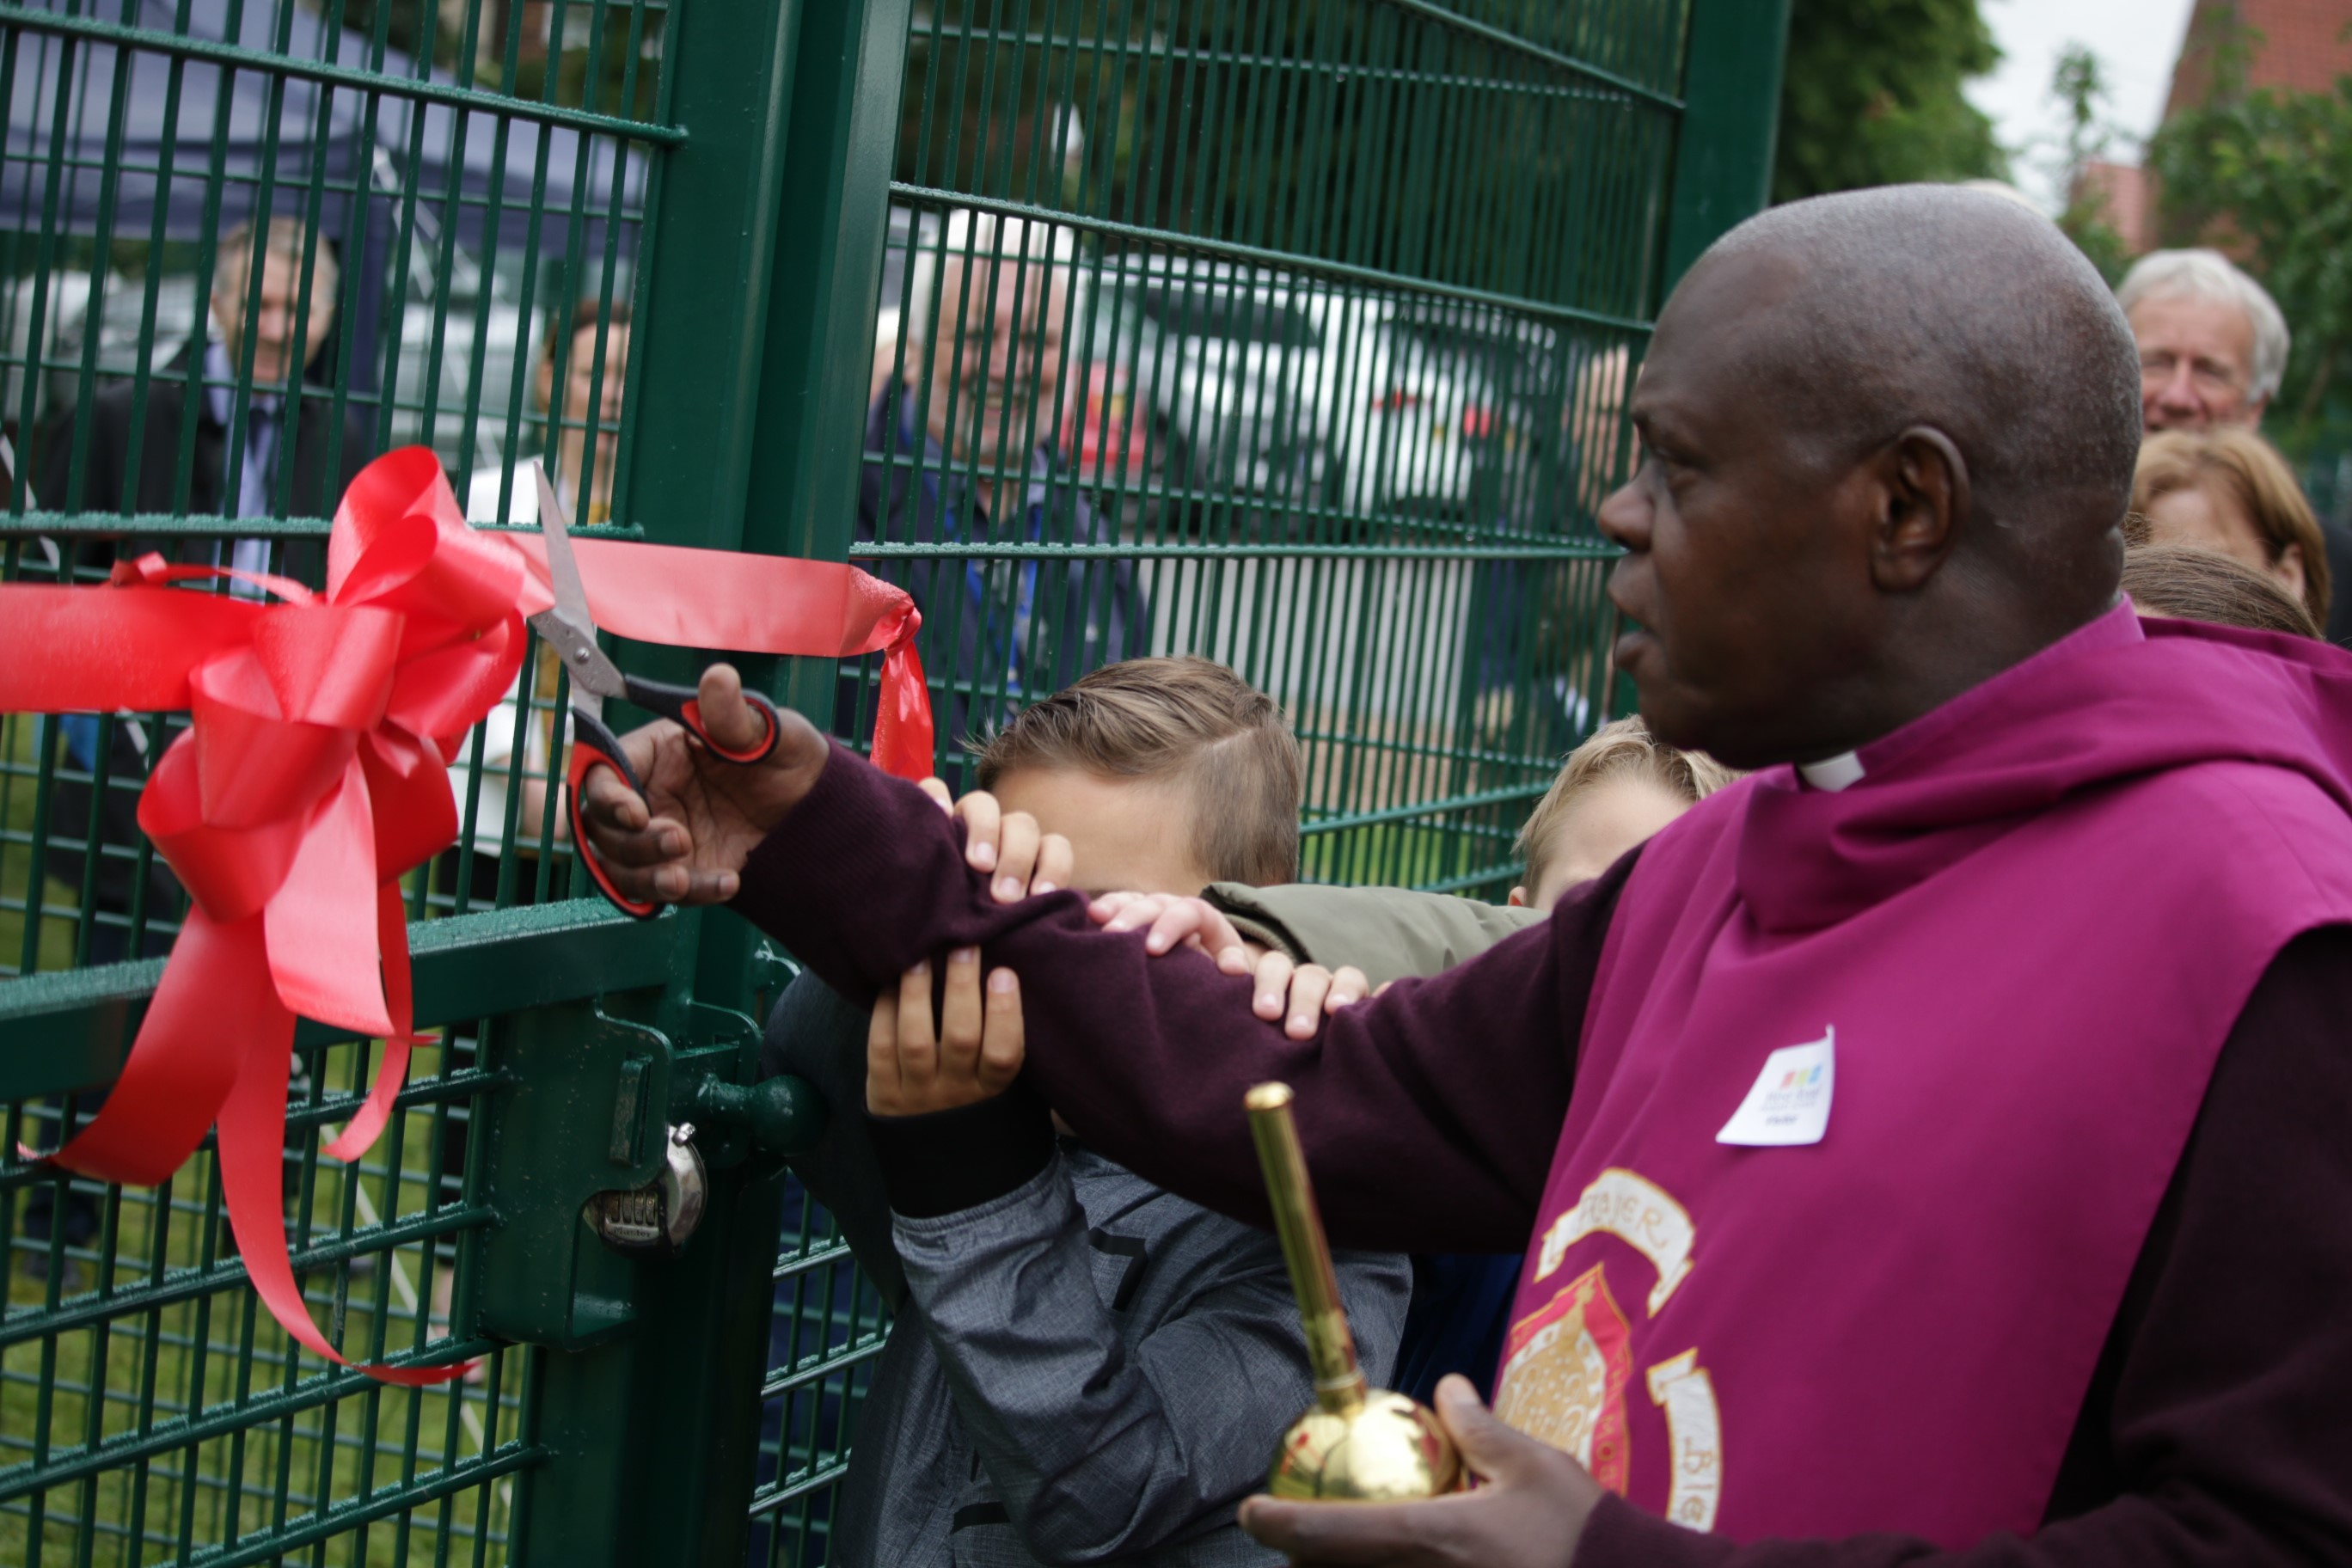 Archbishop of York visit to West Road Primary School Doncaster